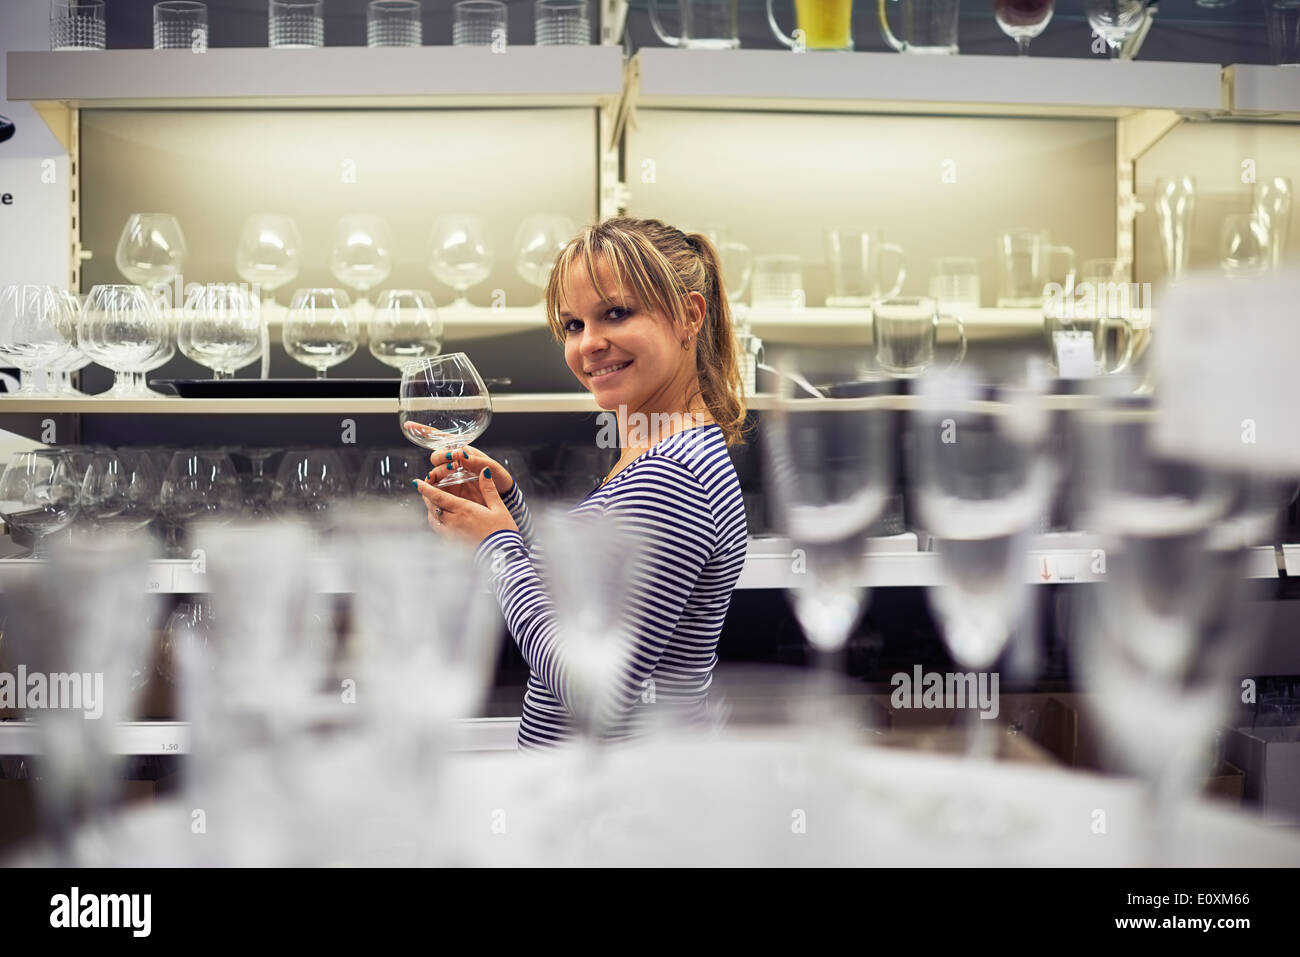 young hispanic woman shopping for furniture, glasses, dishes and home decor in store - Stock Image